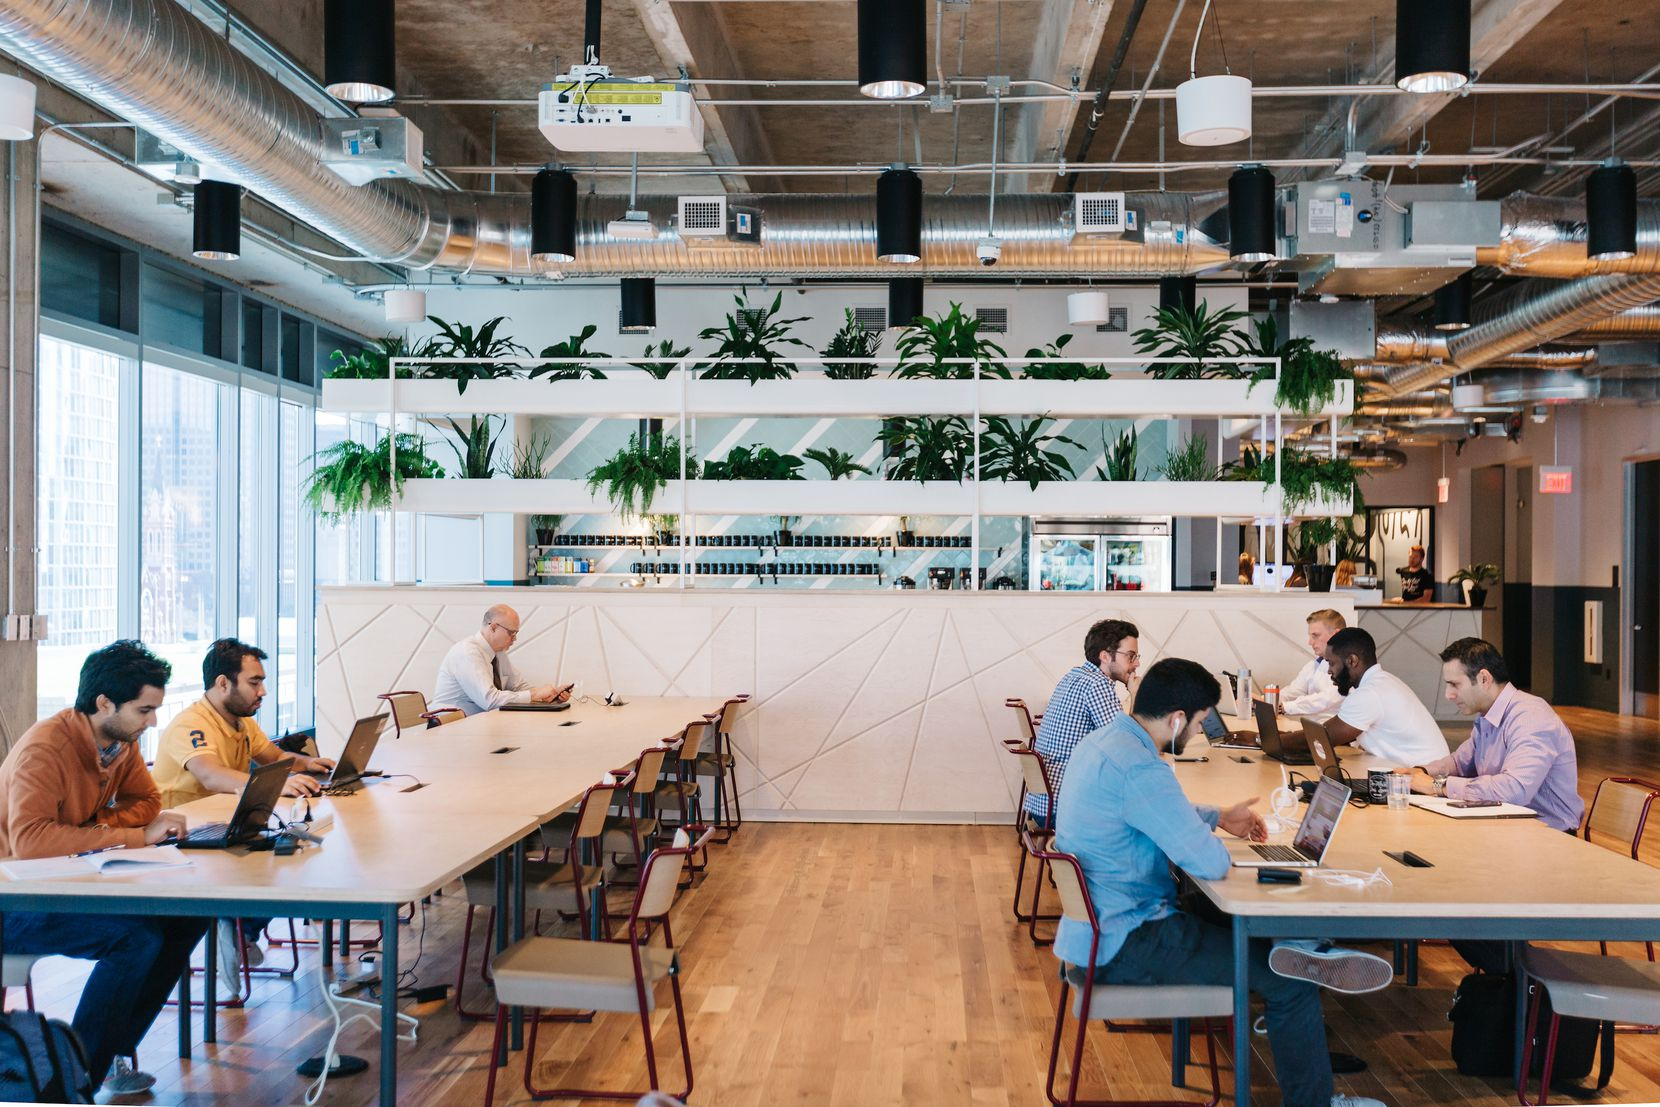 WeWork already has four locations in the Dallas area, including this co-working center on McKinney Avenue in Uptown.